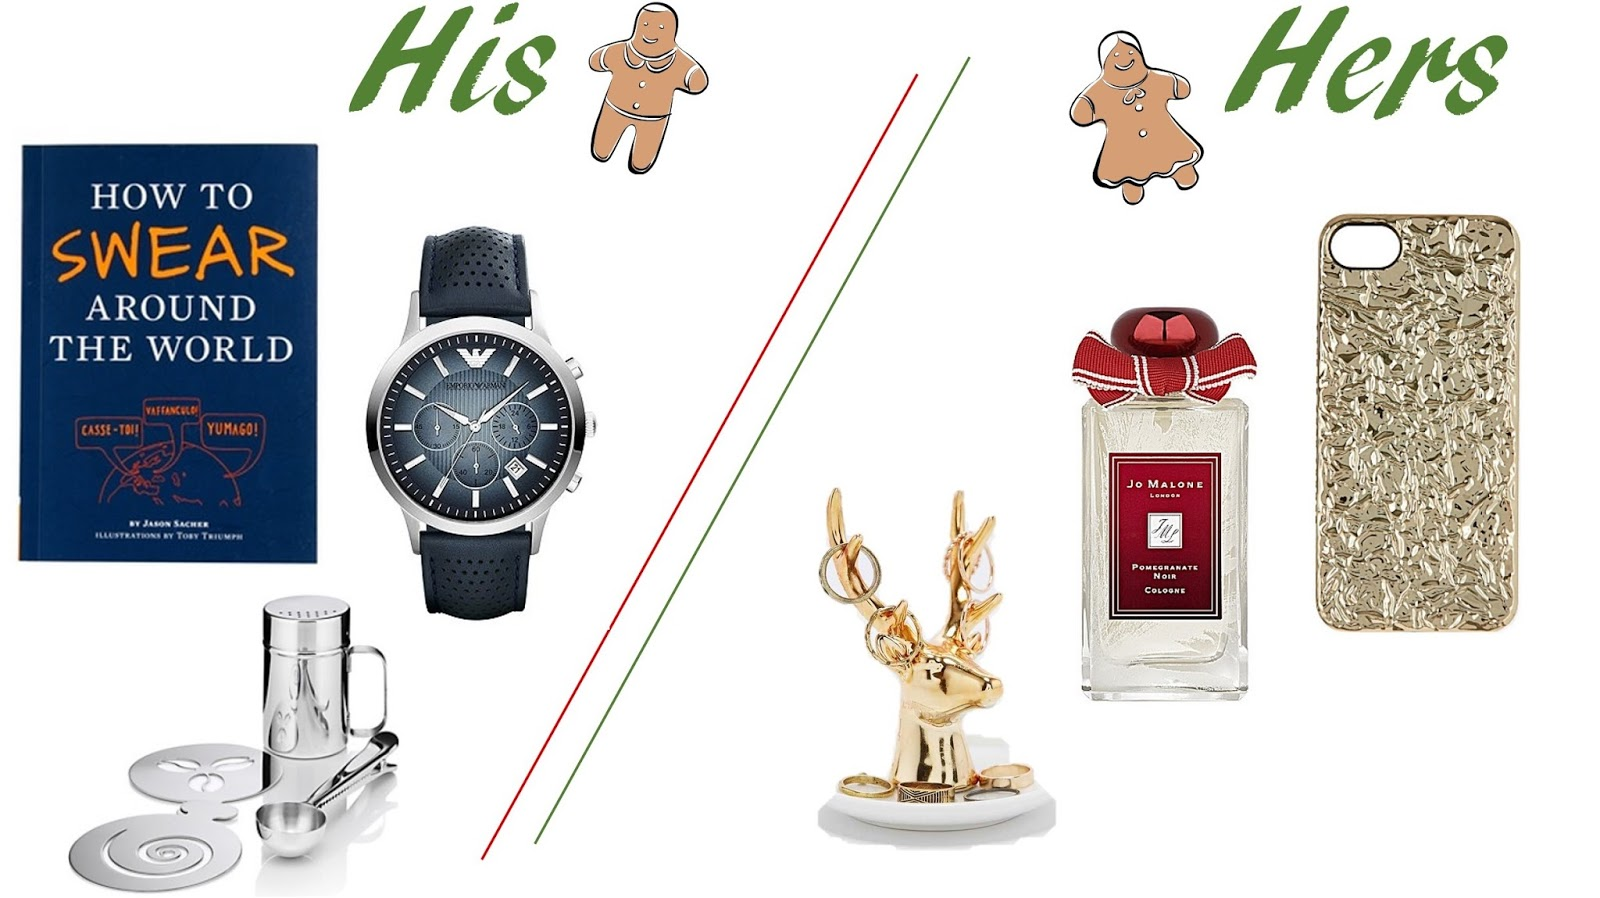 Gift Guide: His & Hers Beauty and Miscellaneous Gifts